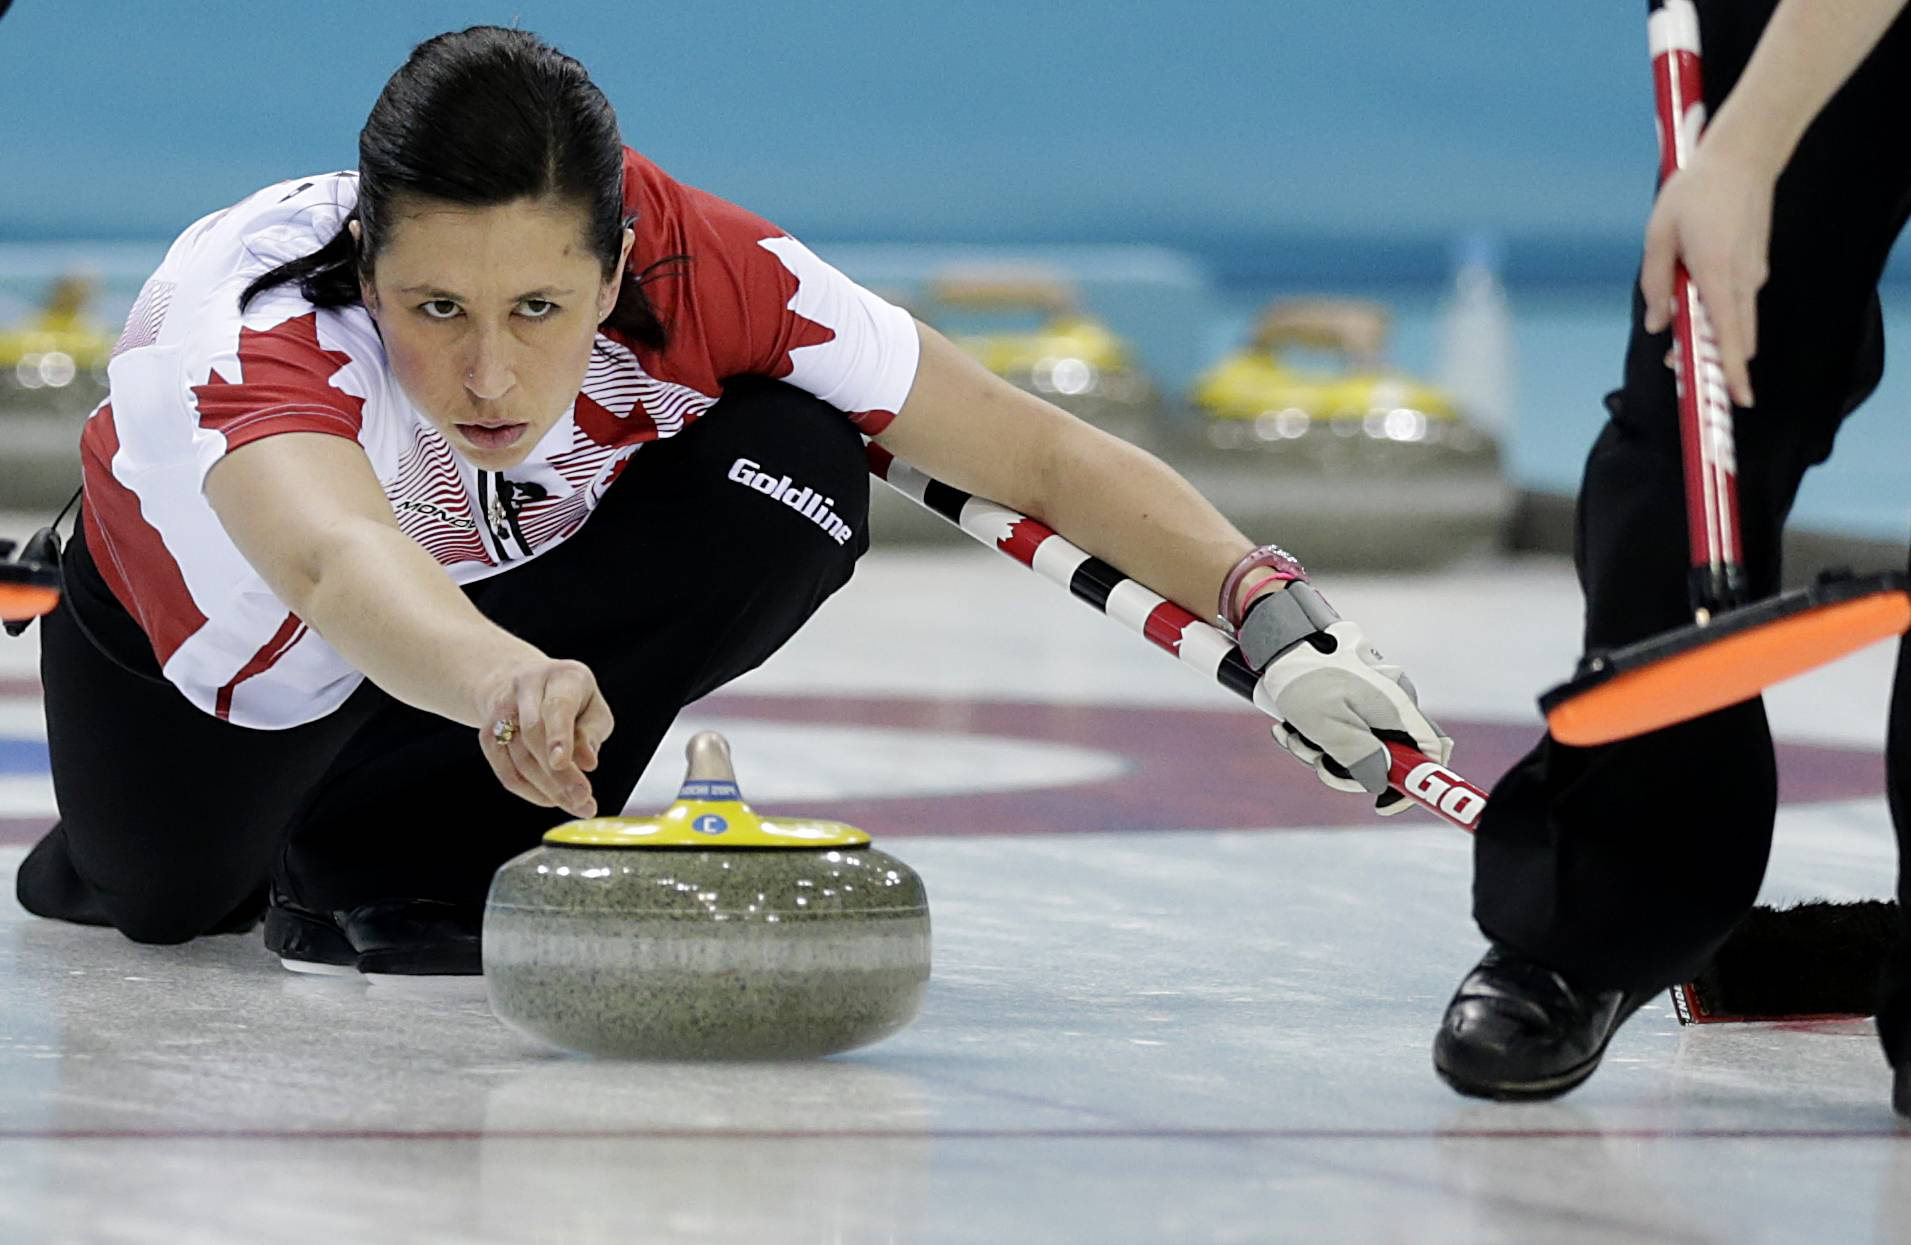 Canada's Jill Officer releases the rock during the women's curling semifinal game against Britain at the 2014 Winter Olympics, Wednesday, Feb. 19, 2014, in Sochi, Russia.